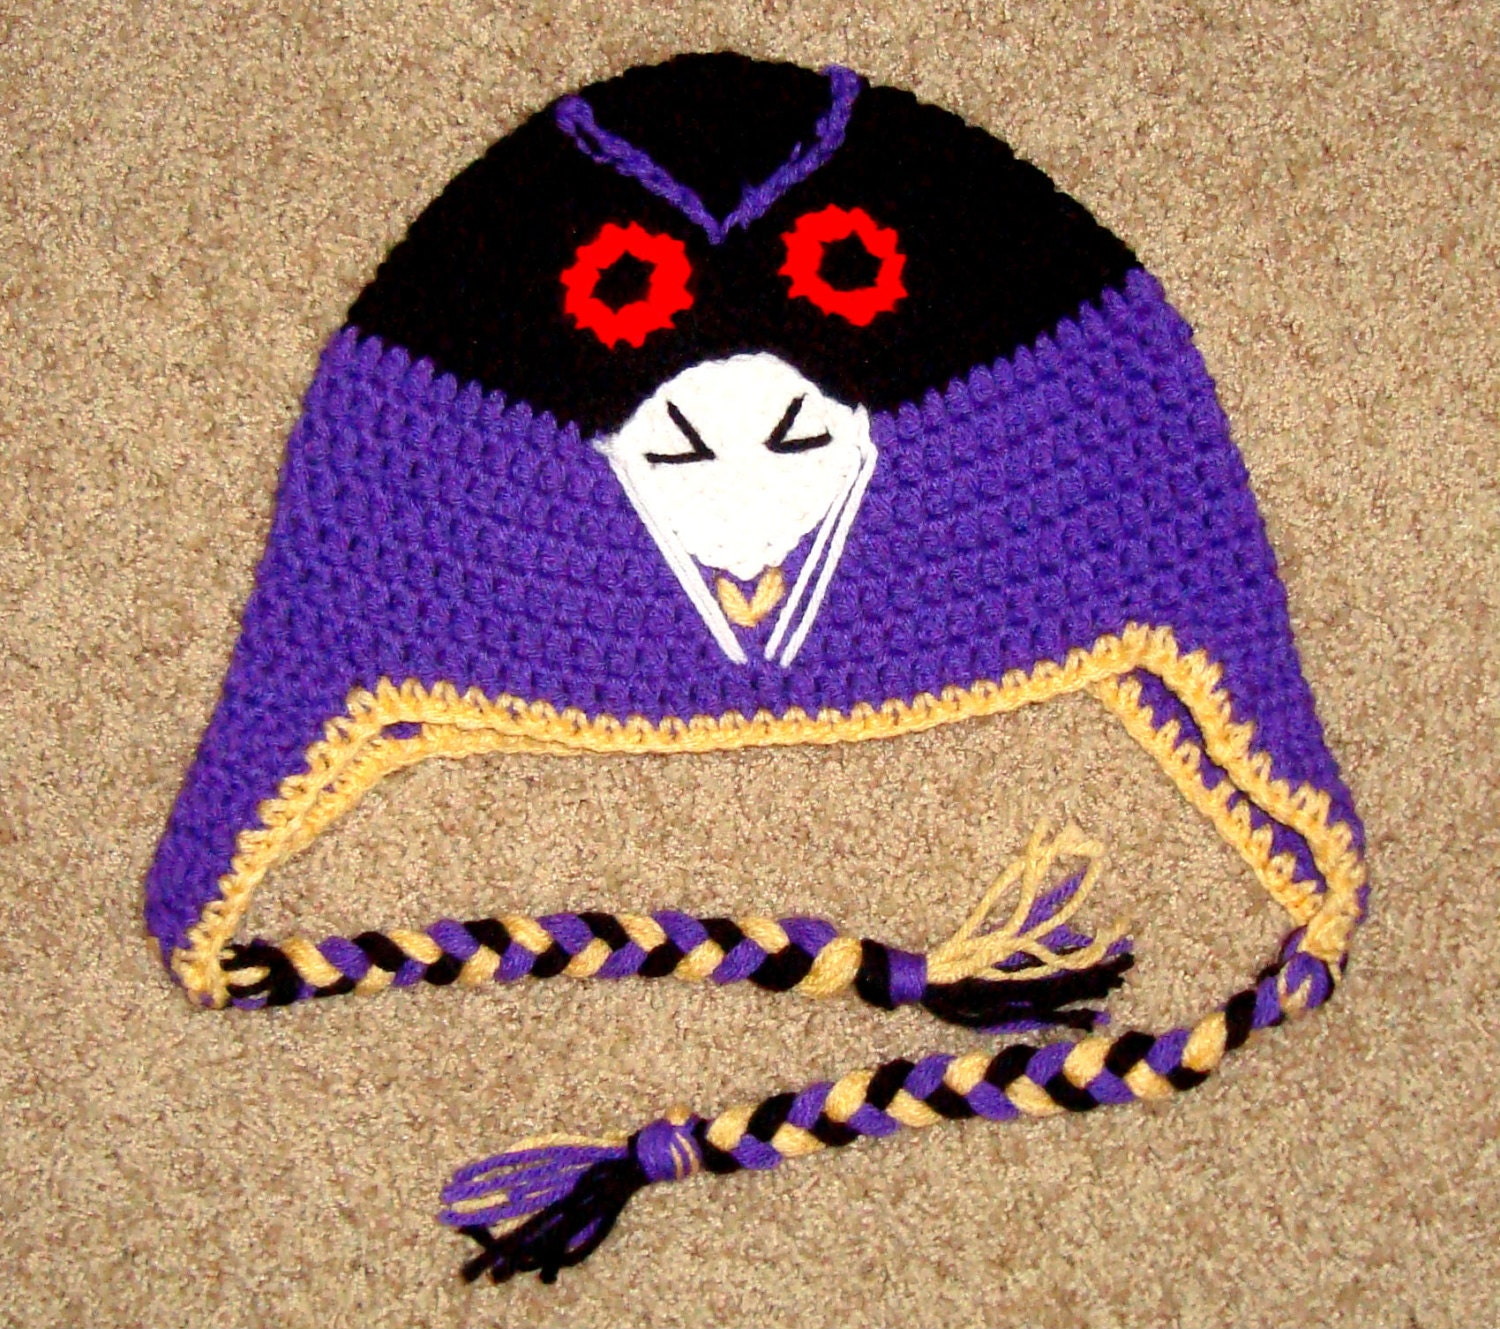 64f3cce726d ... low cost crochet baltimore ravens hat etsy 7bc91 bce2e